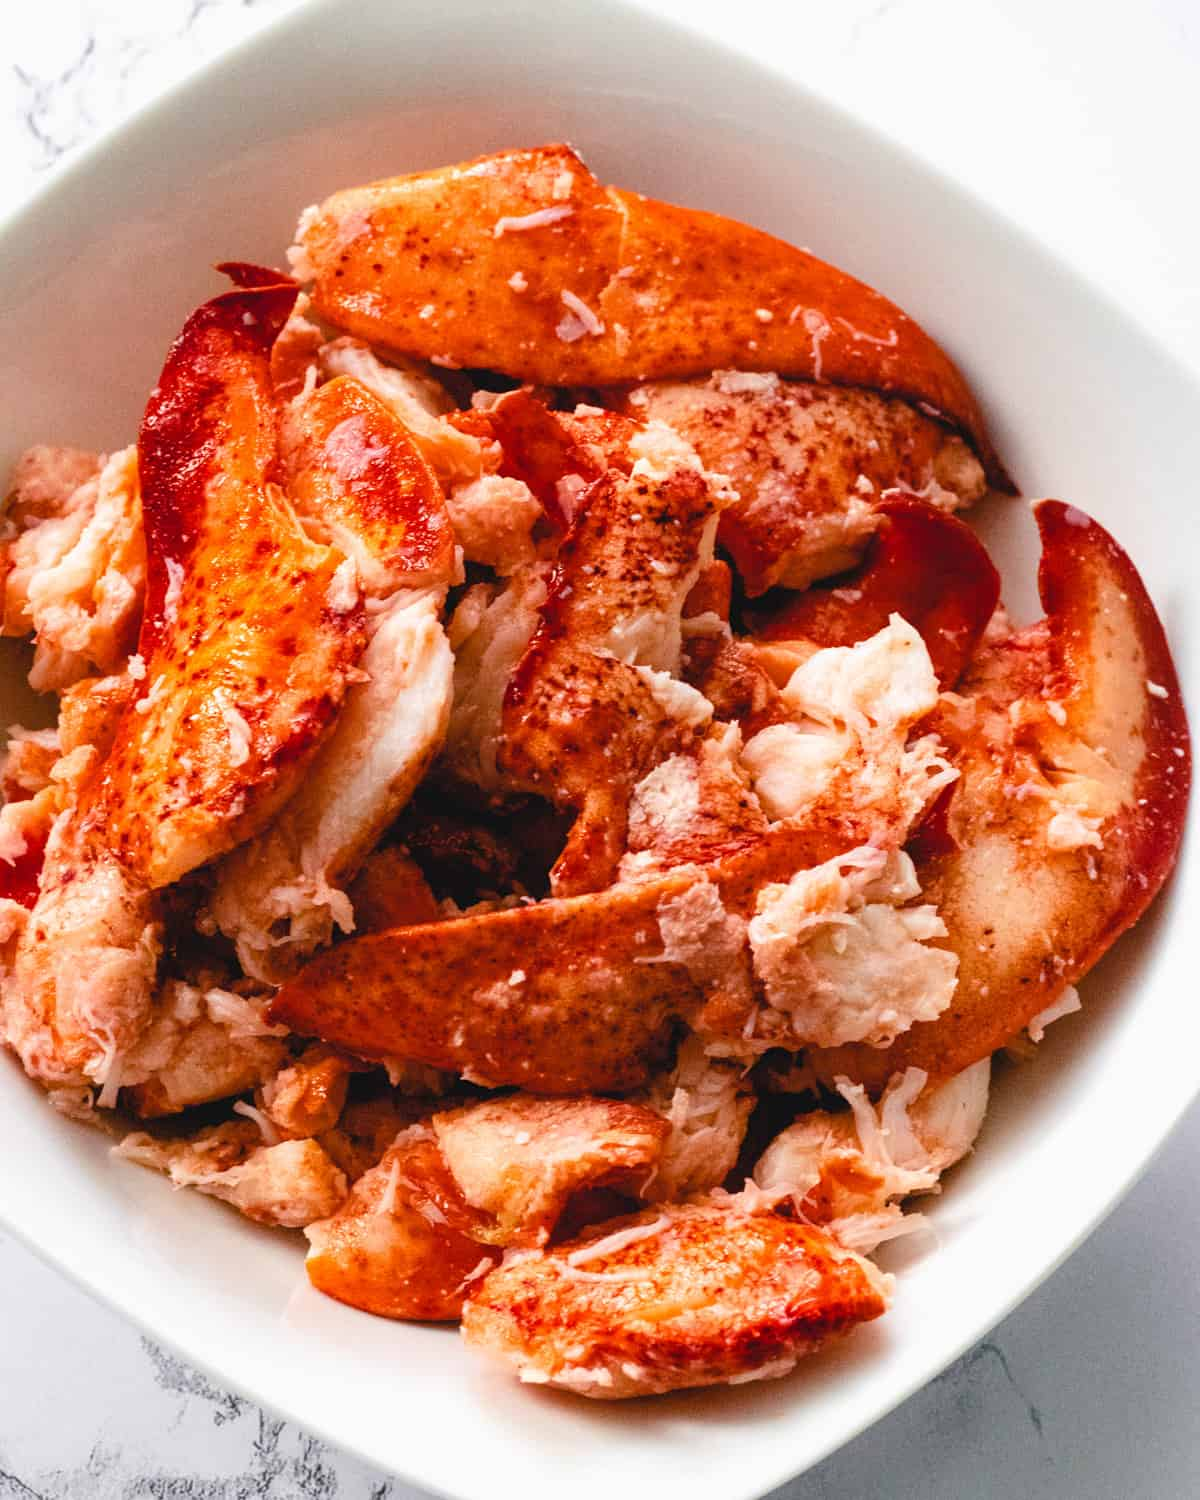 Bowl of fresh lobster meat.